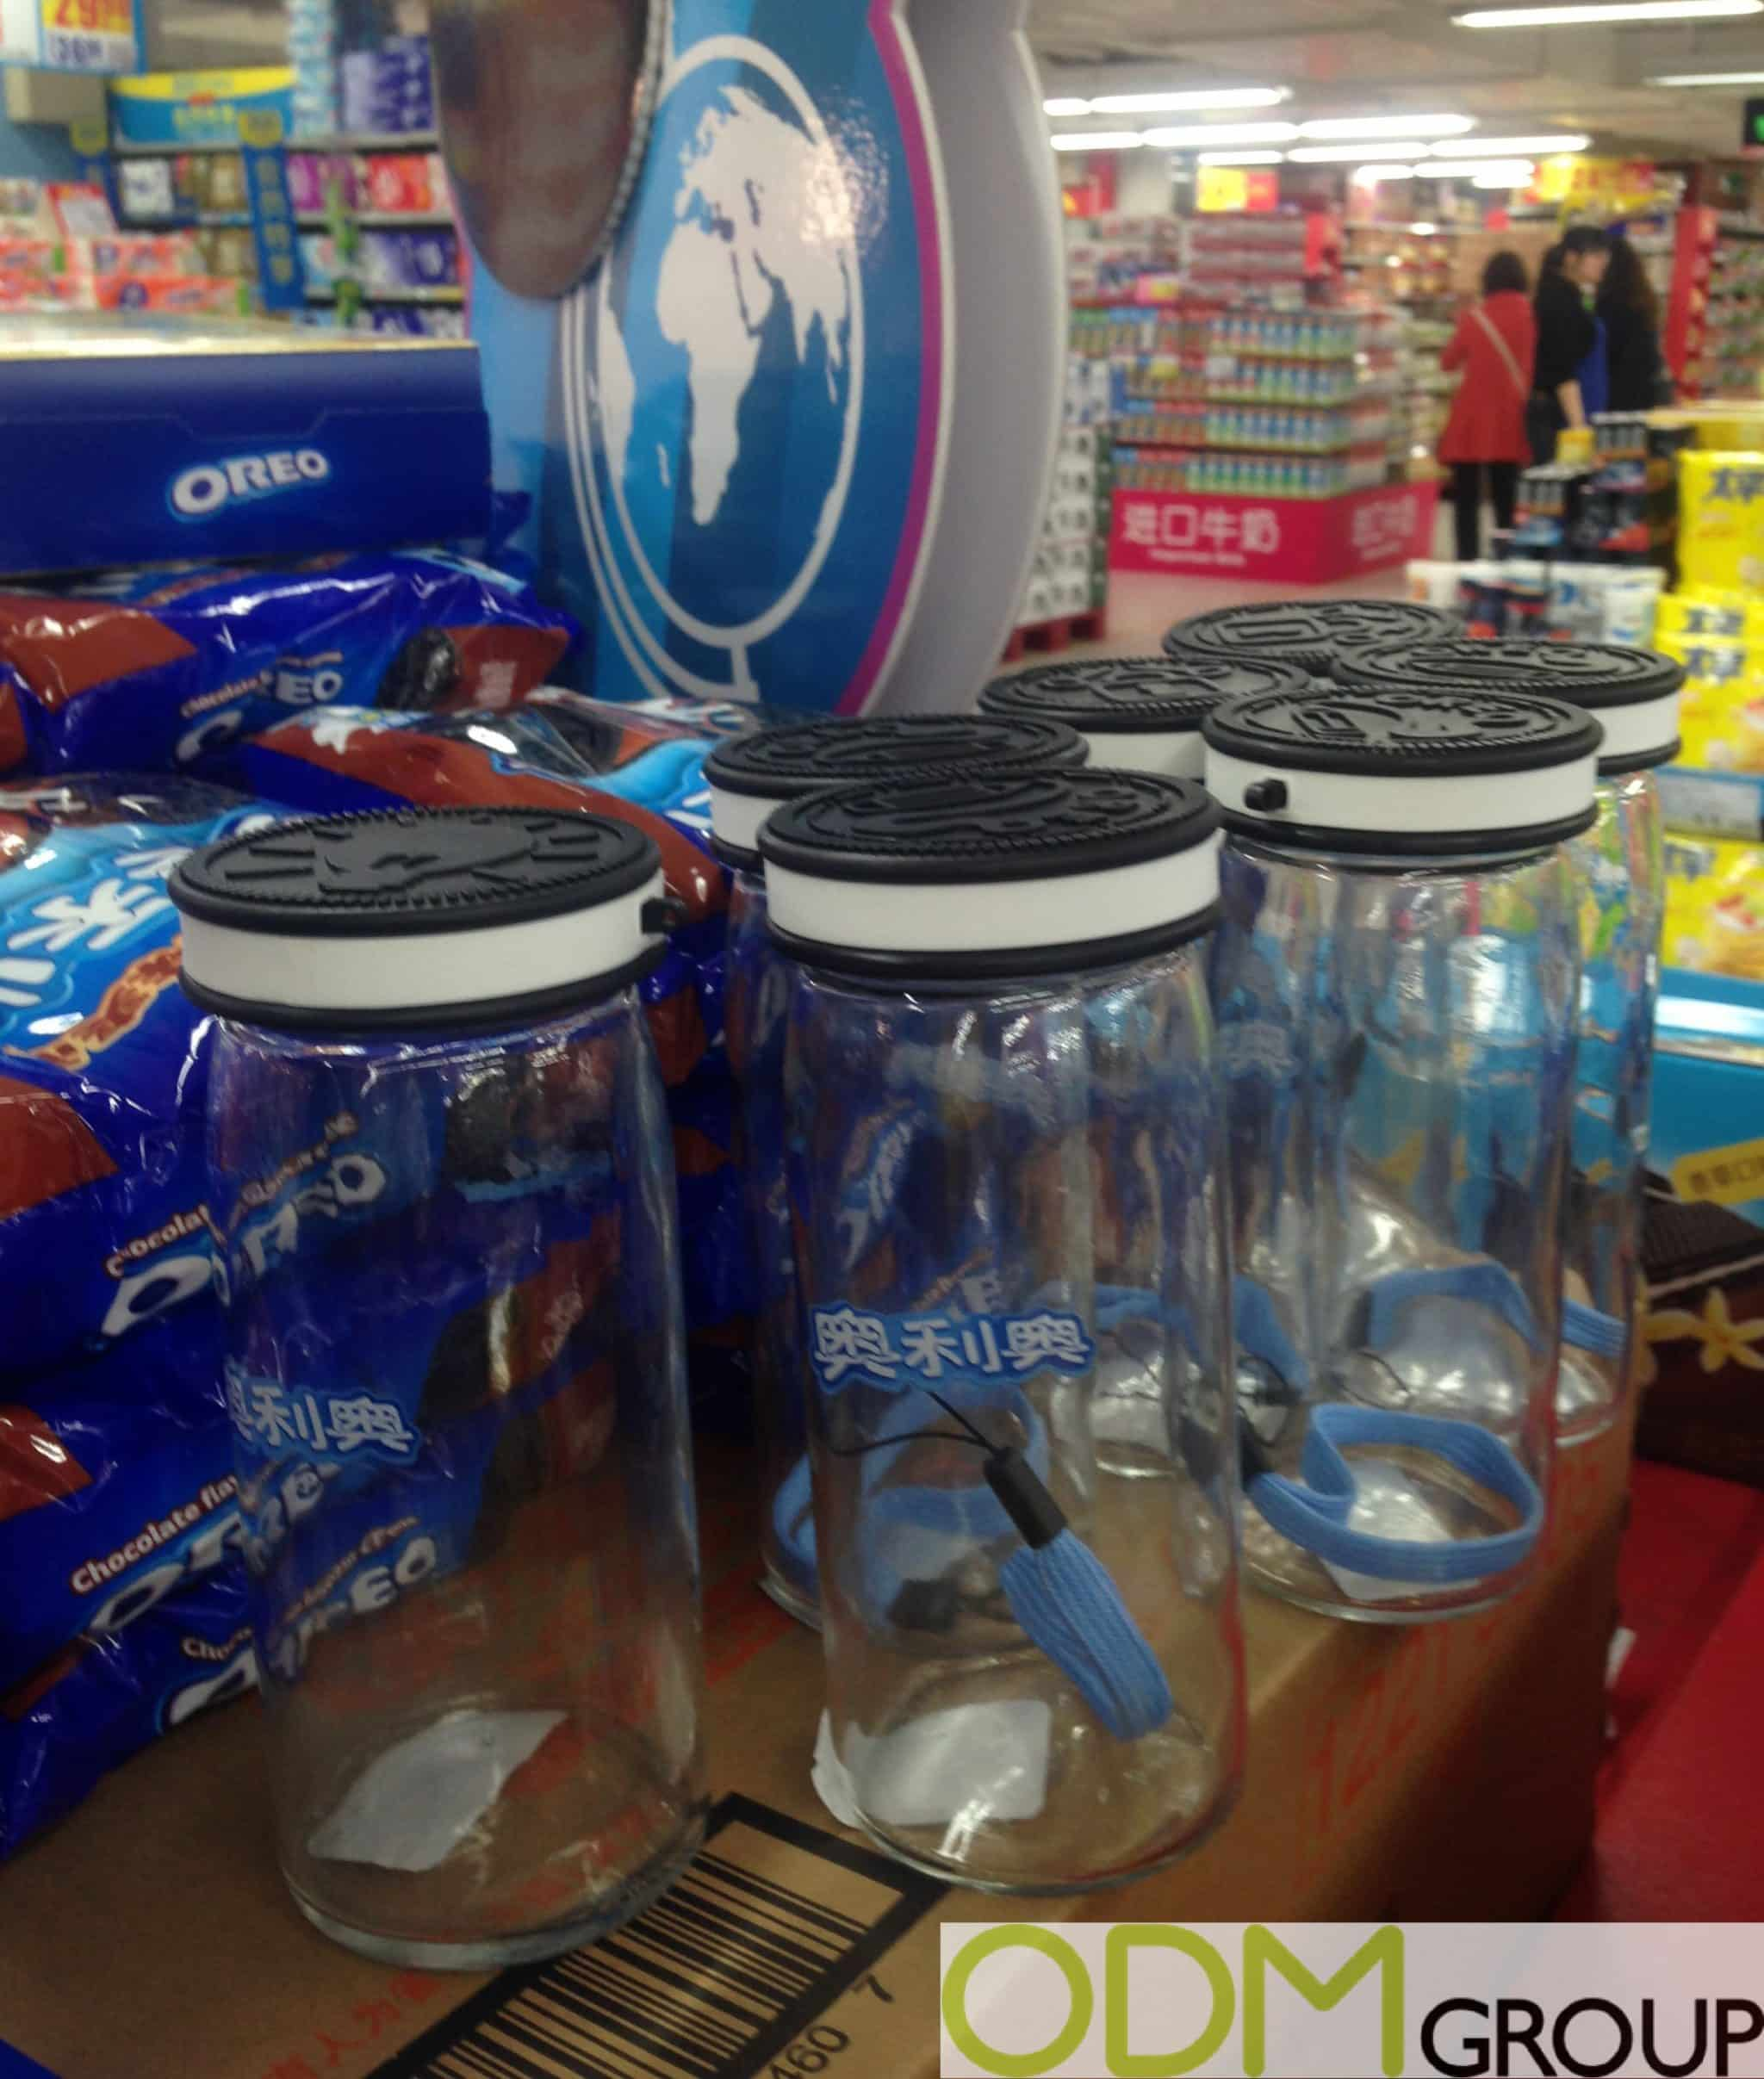 Custom Water Bottle as Gift with Purchase of Oreo Cookies